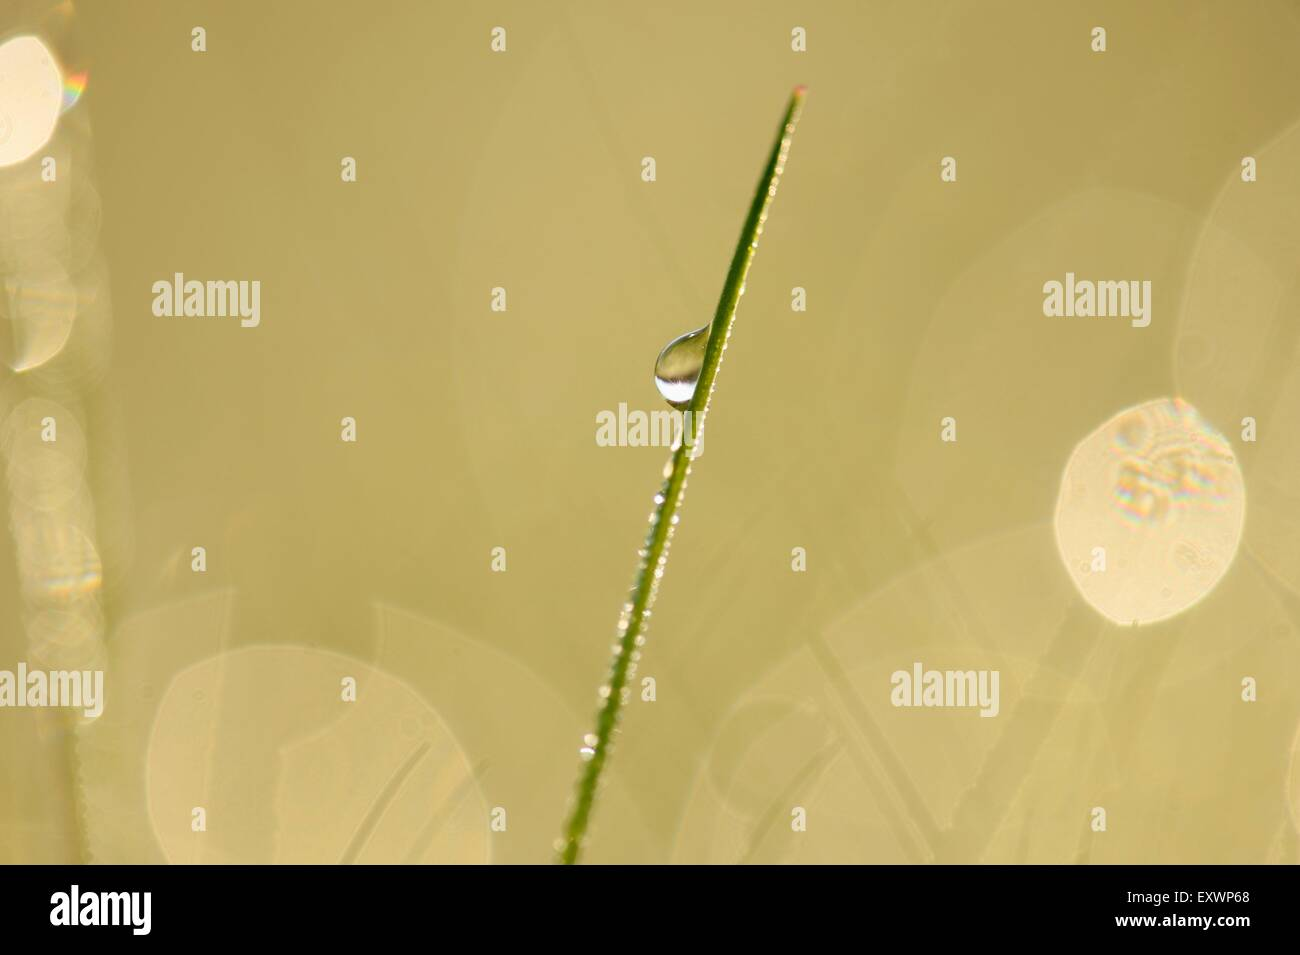 Detail of a grass blade with waterdrop - Stock Image